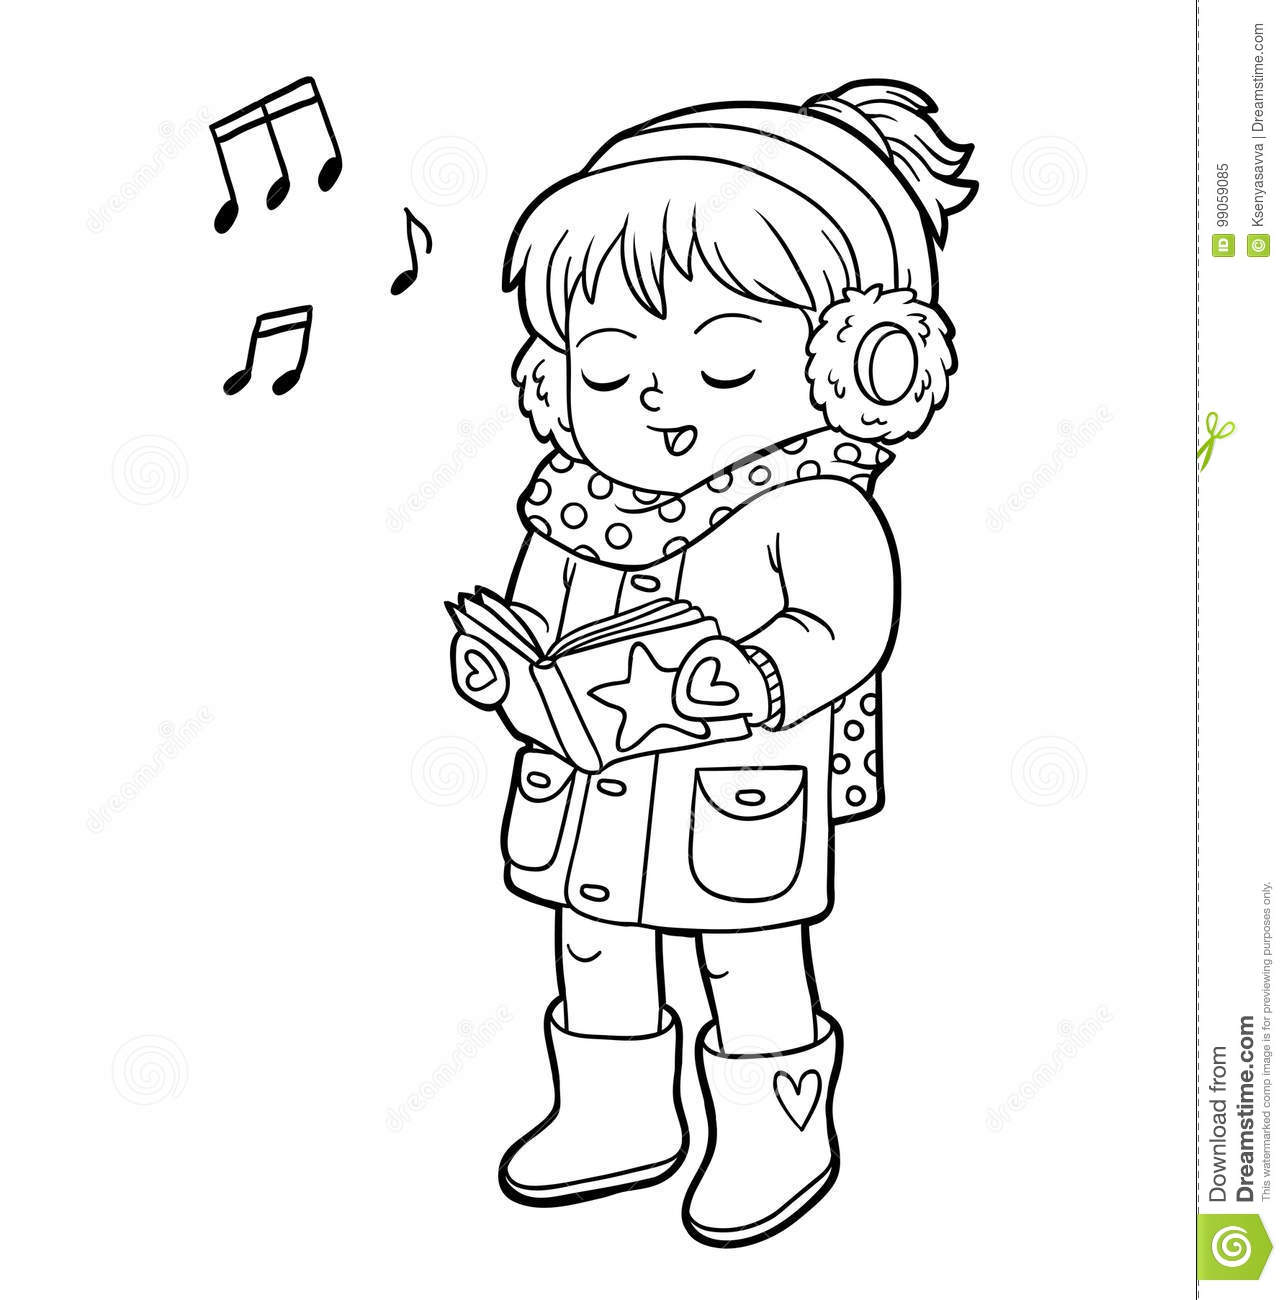 Song Cartoons, Illustrations & Vector Stock Images